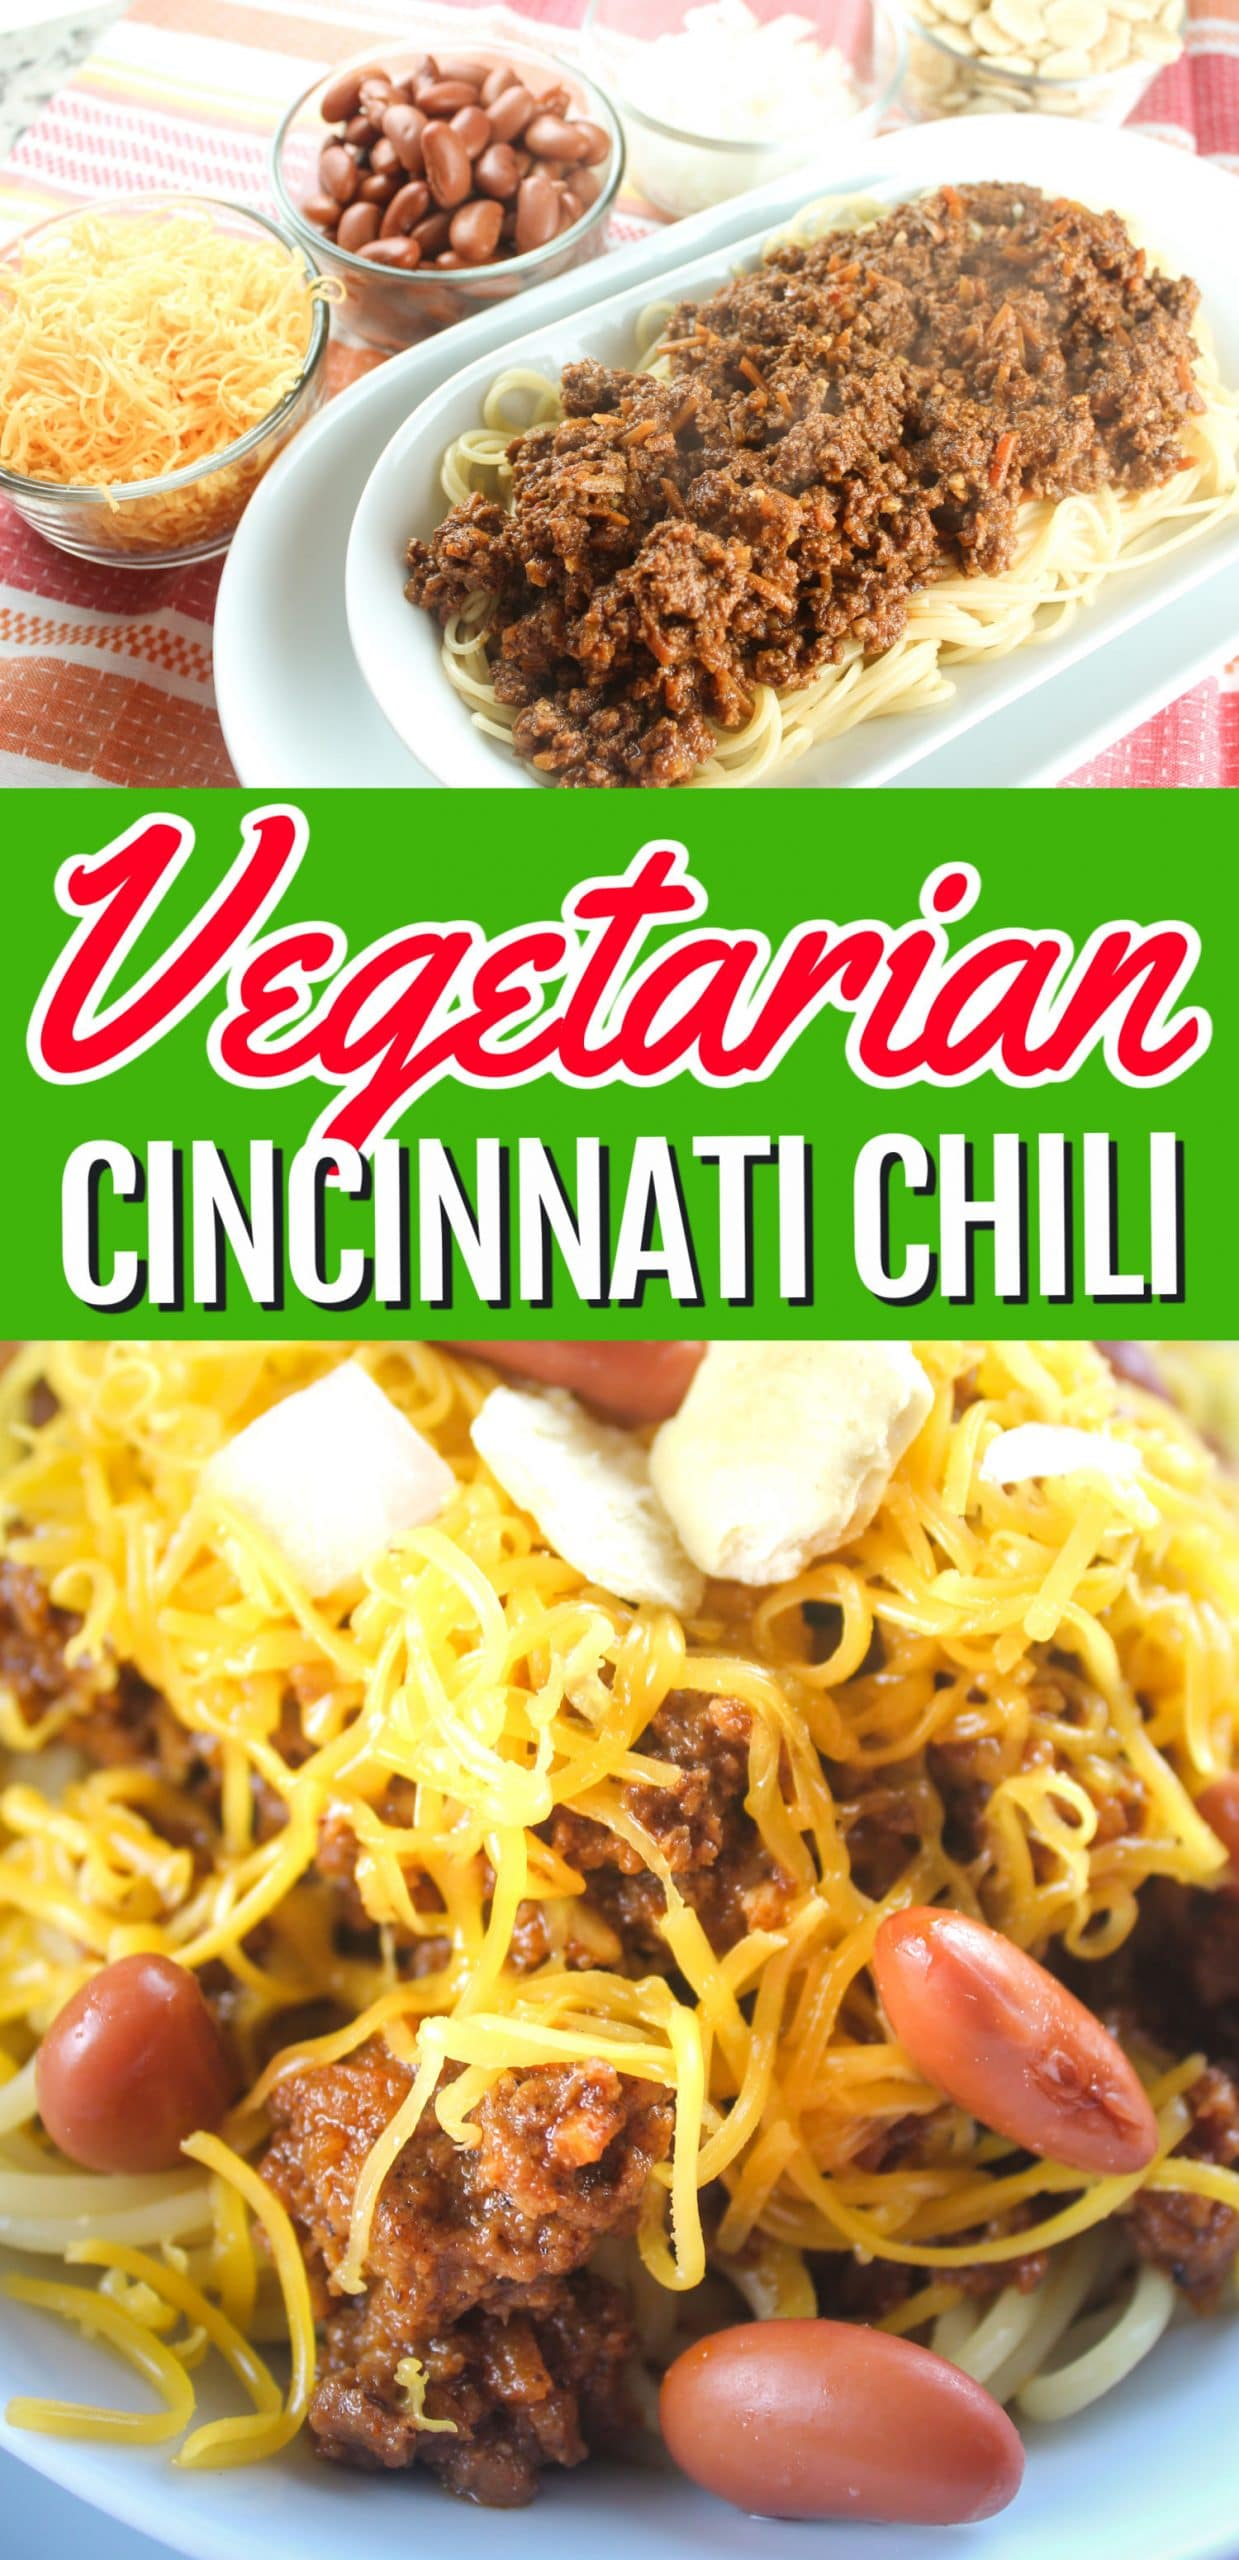 Vegetarian Cincinnati Chili has become a lot easier in this world where plant-based proteins are so much more prevalent. This recipe for a vegetarian version of Cincinnati chili also has some added veggies and a little spice for kick! No worries though - we didn't lose any of the CHEESE!  via @foodhussy